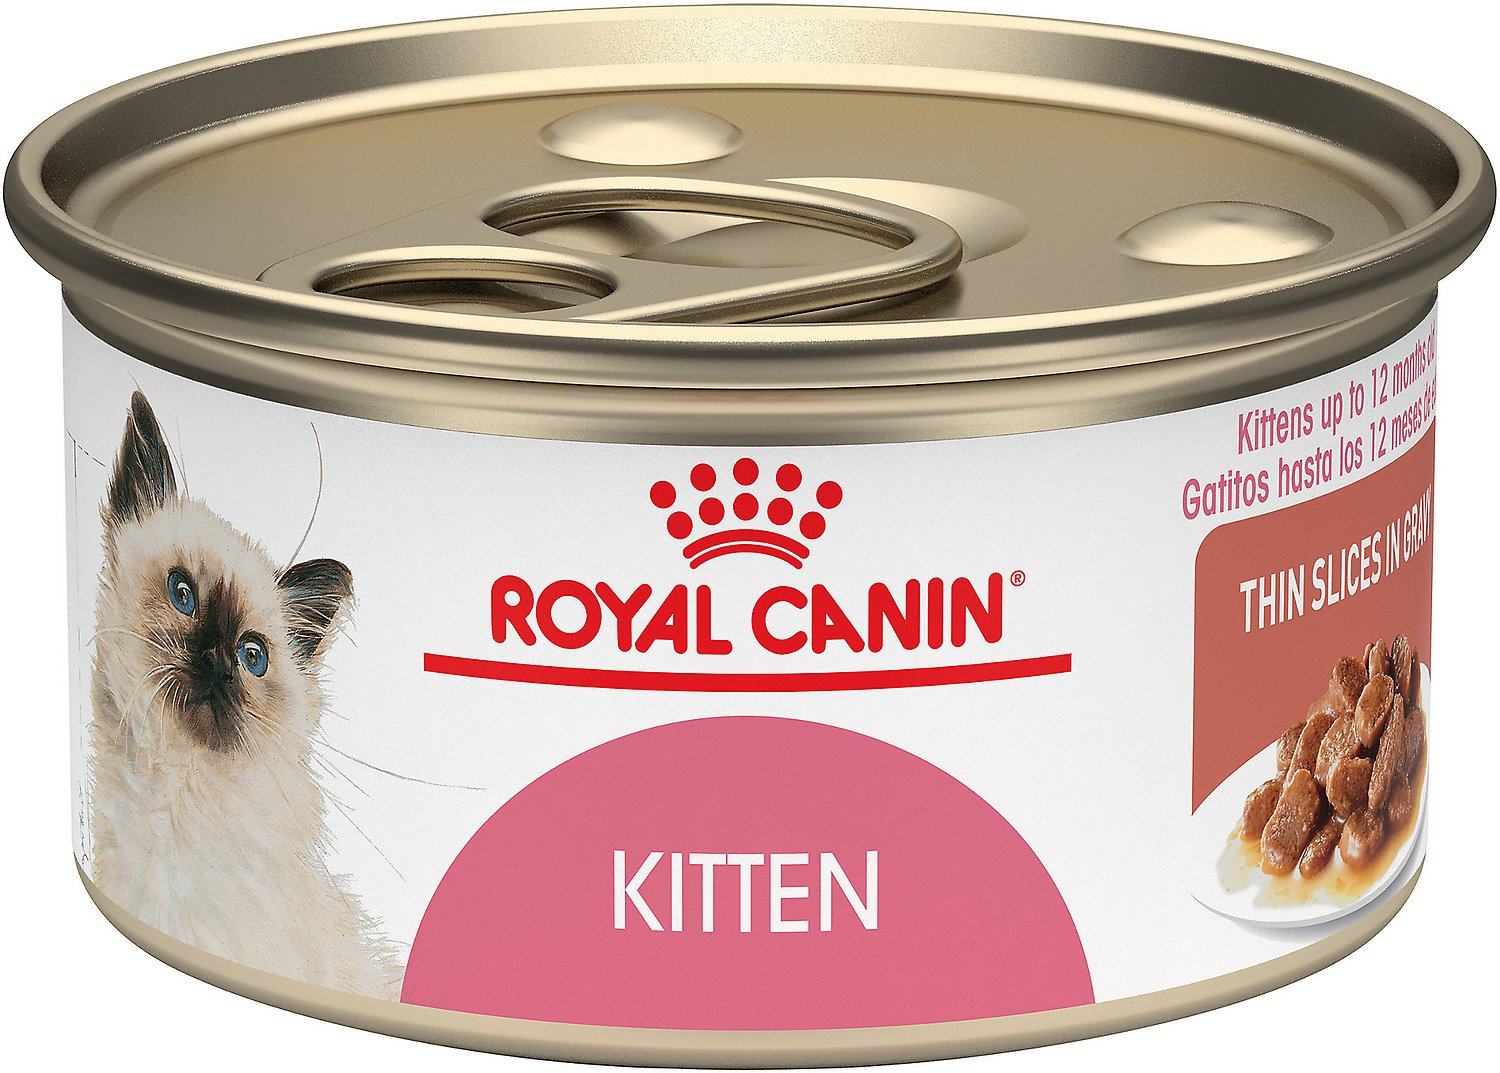 royal canin kitten instinctive thin slices in gravy canned cat food 3 oz case of 12. Black Bedroom Furniture Sets. Home Design Ideas